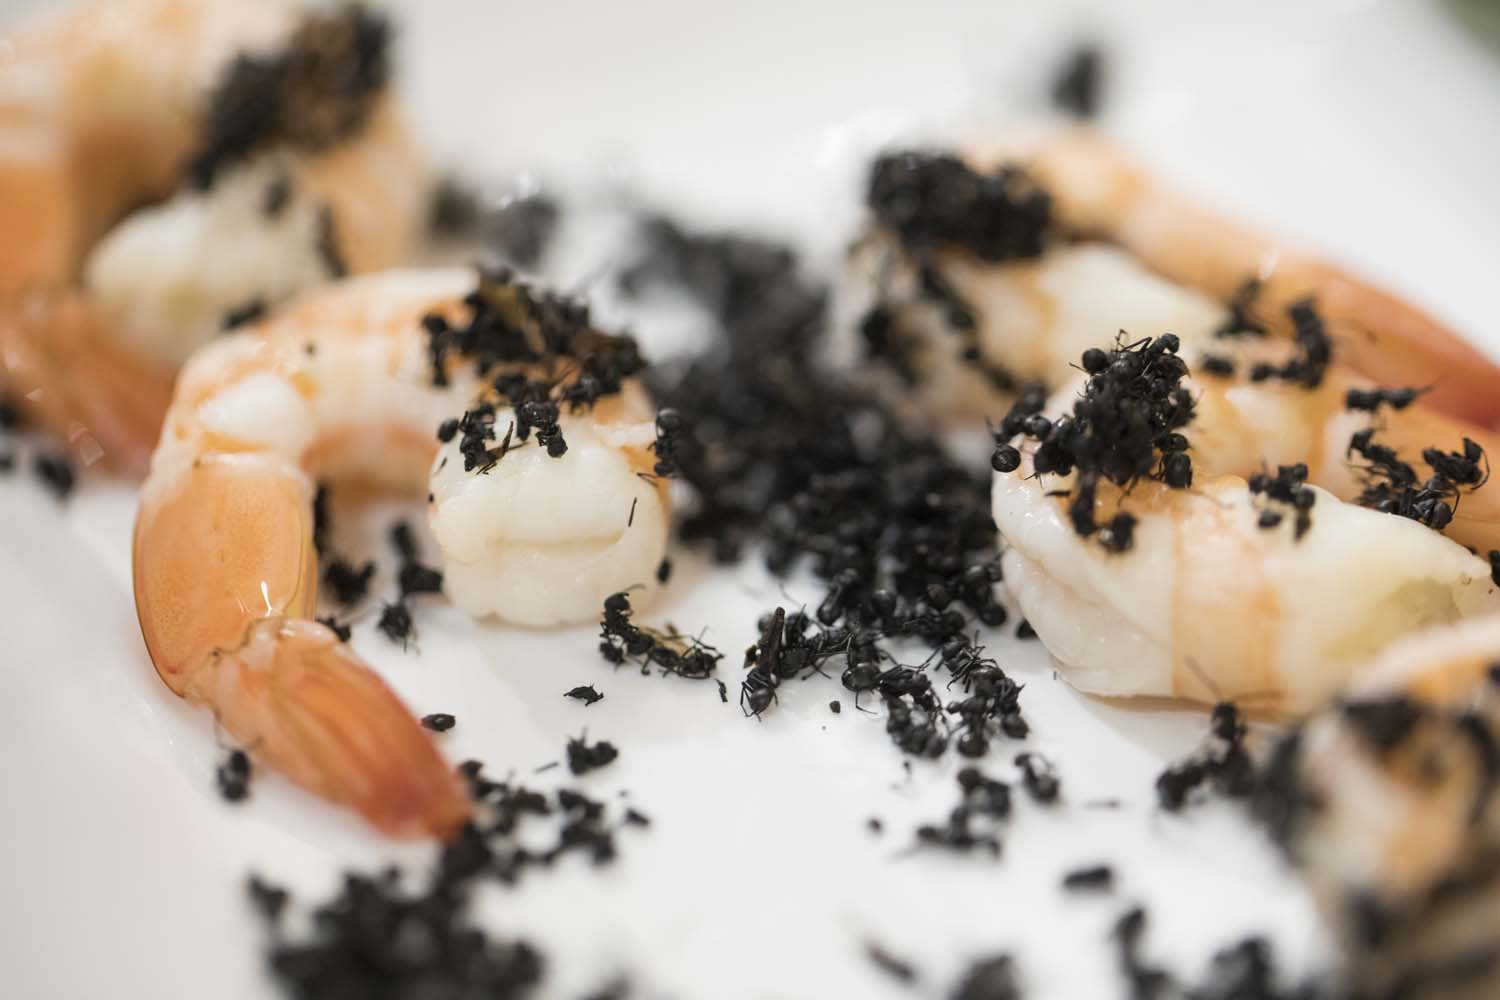 Edible Ants on Shrimp